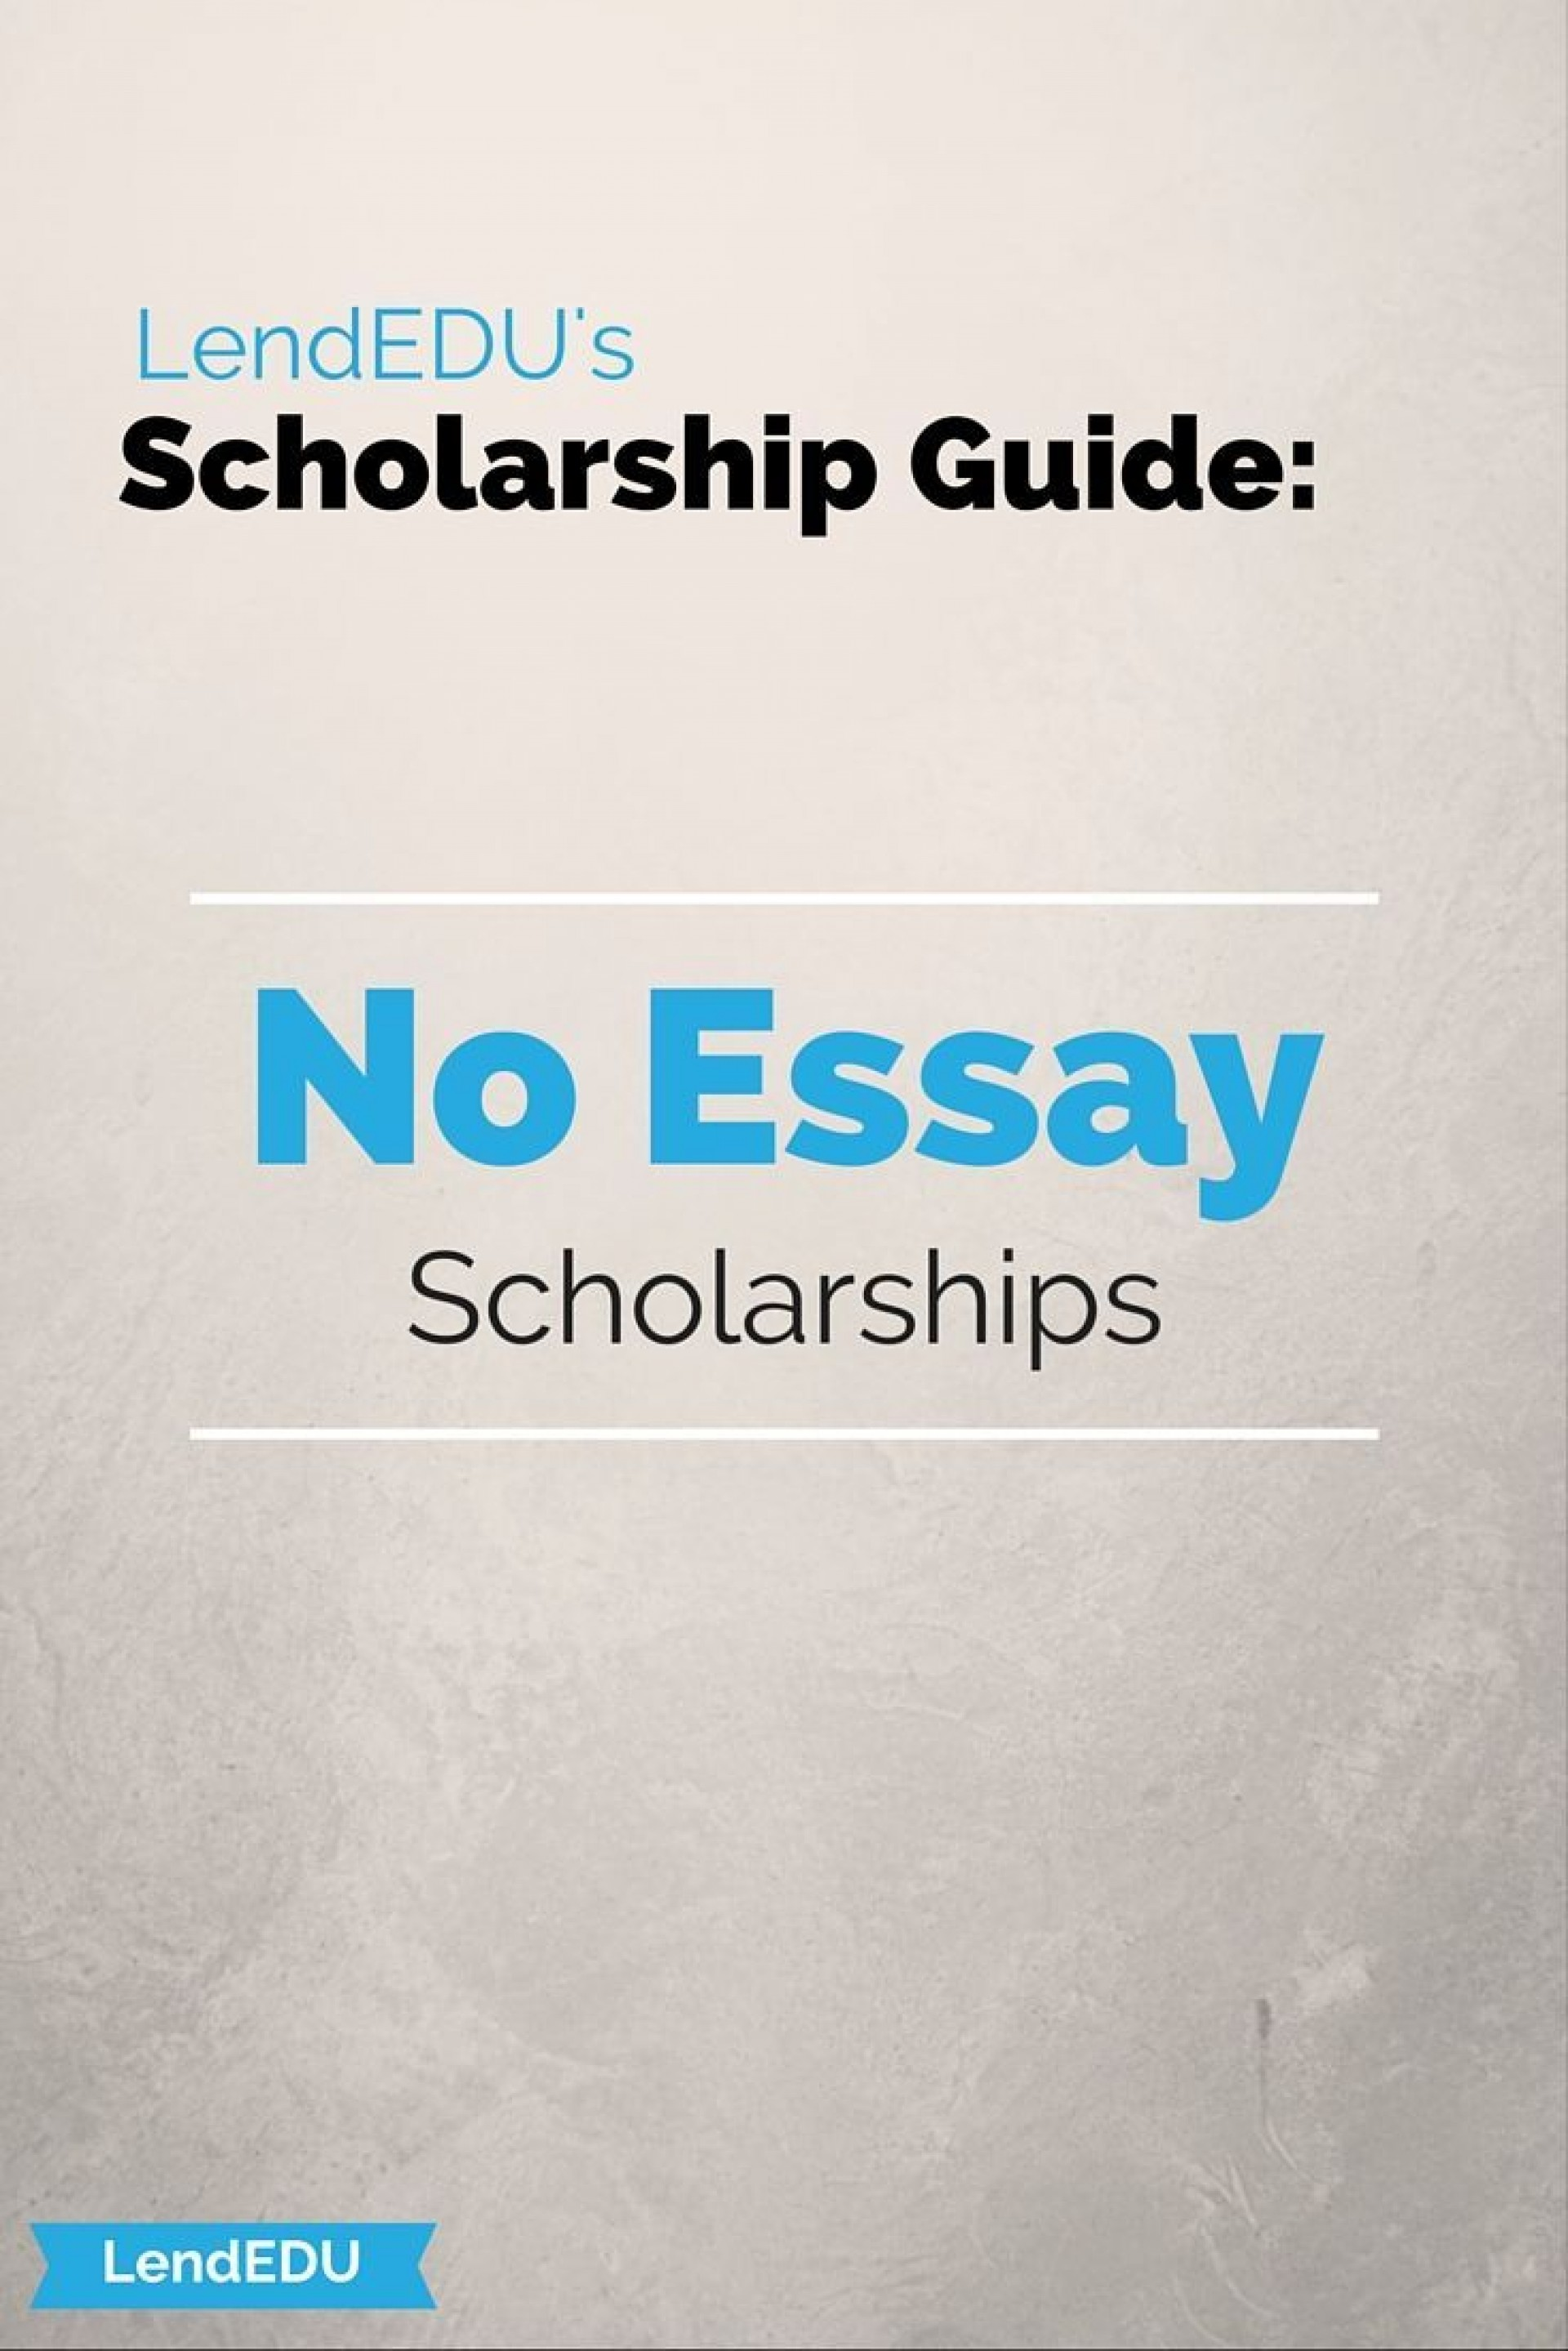 018 No Essay Scholarships Example Exceptional For Undergraduates College Students 2019 1920